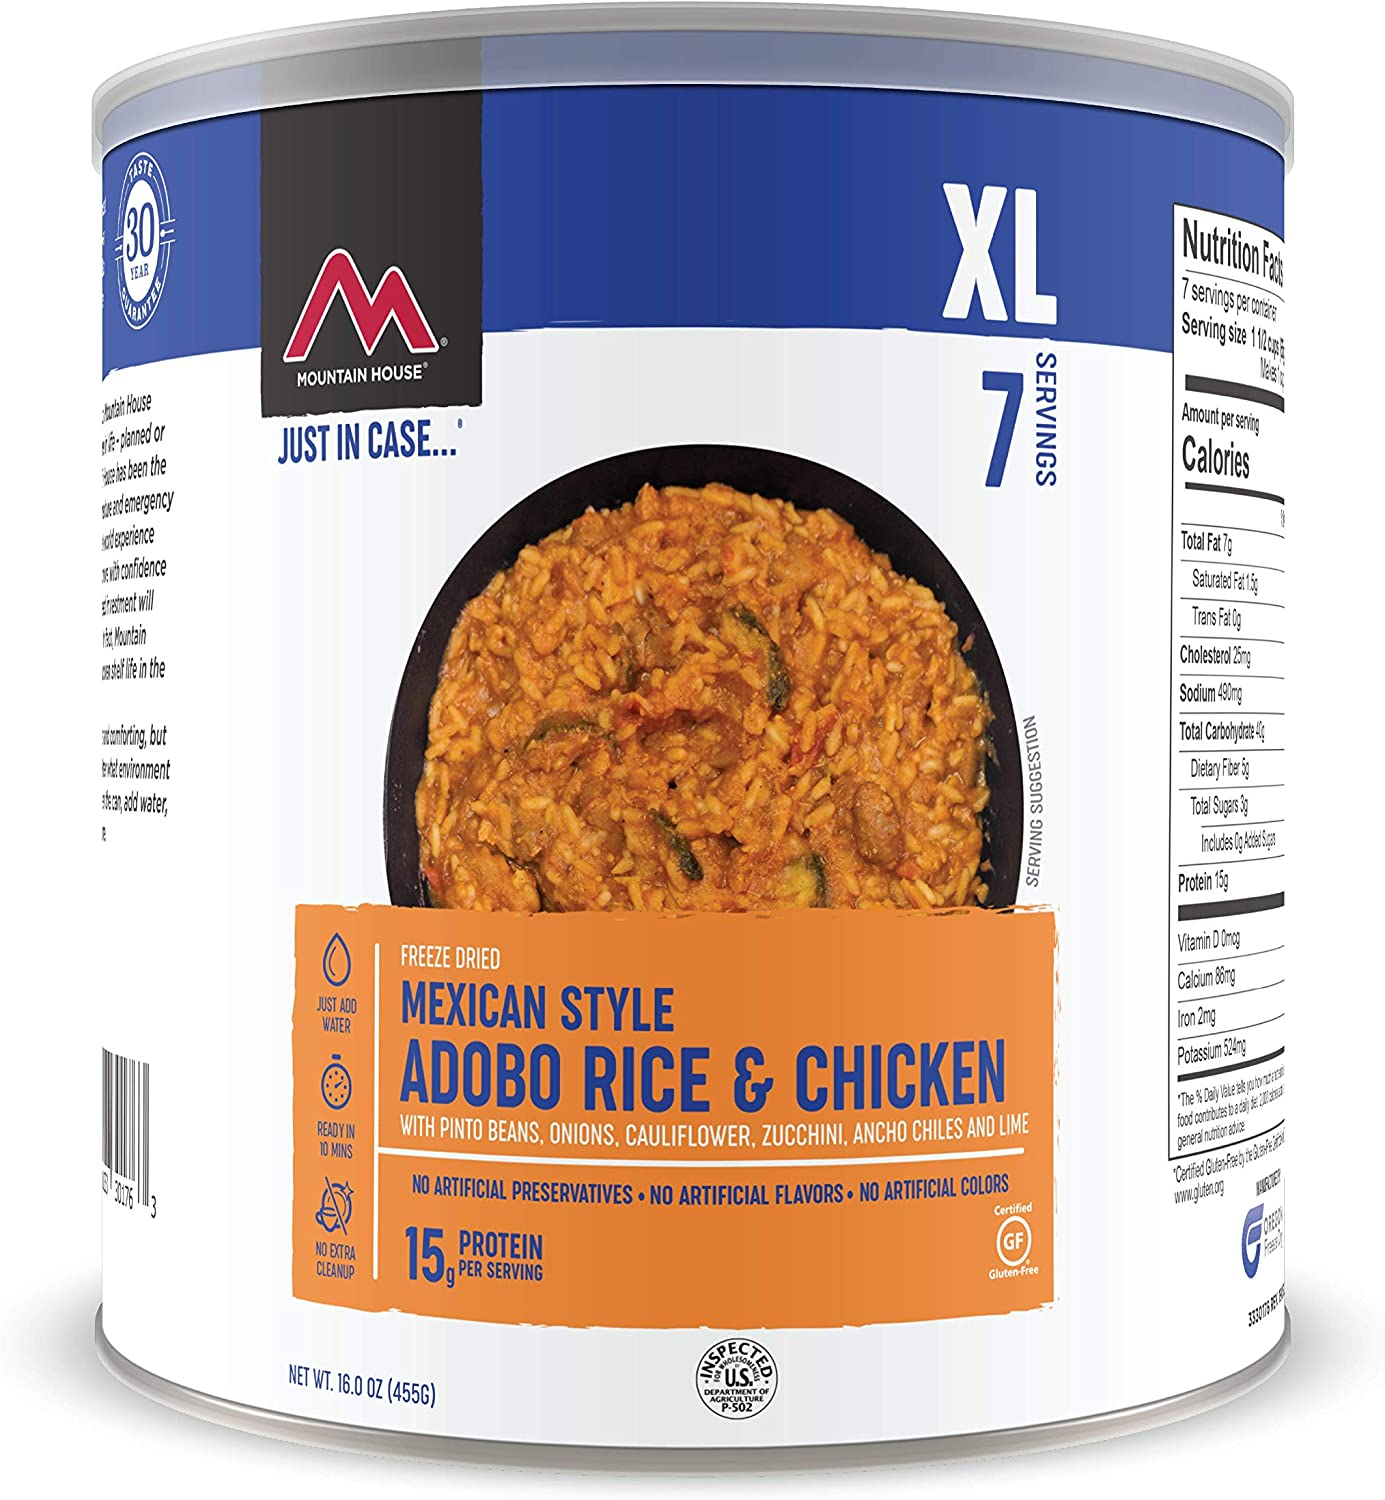 Mountain House Mexican Style Adobo Rice & Chicken | Freeze Dried Backpacking & Camping Food | Survival & Emergency Food | Gluten-Free